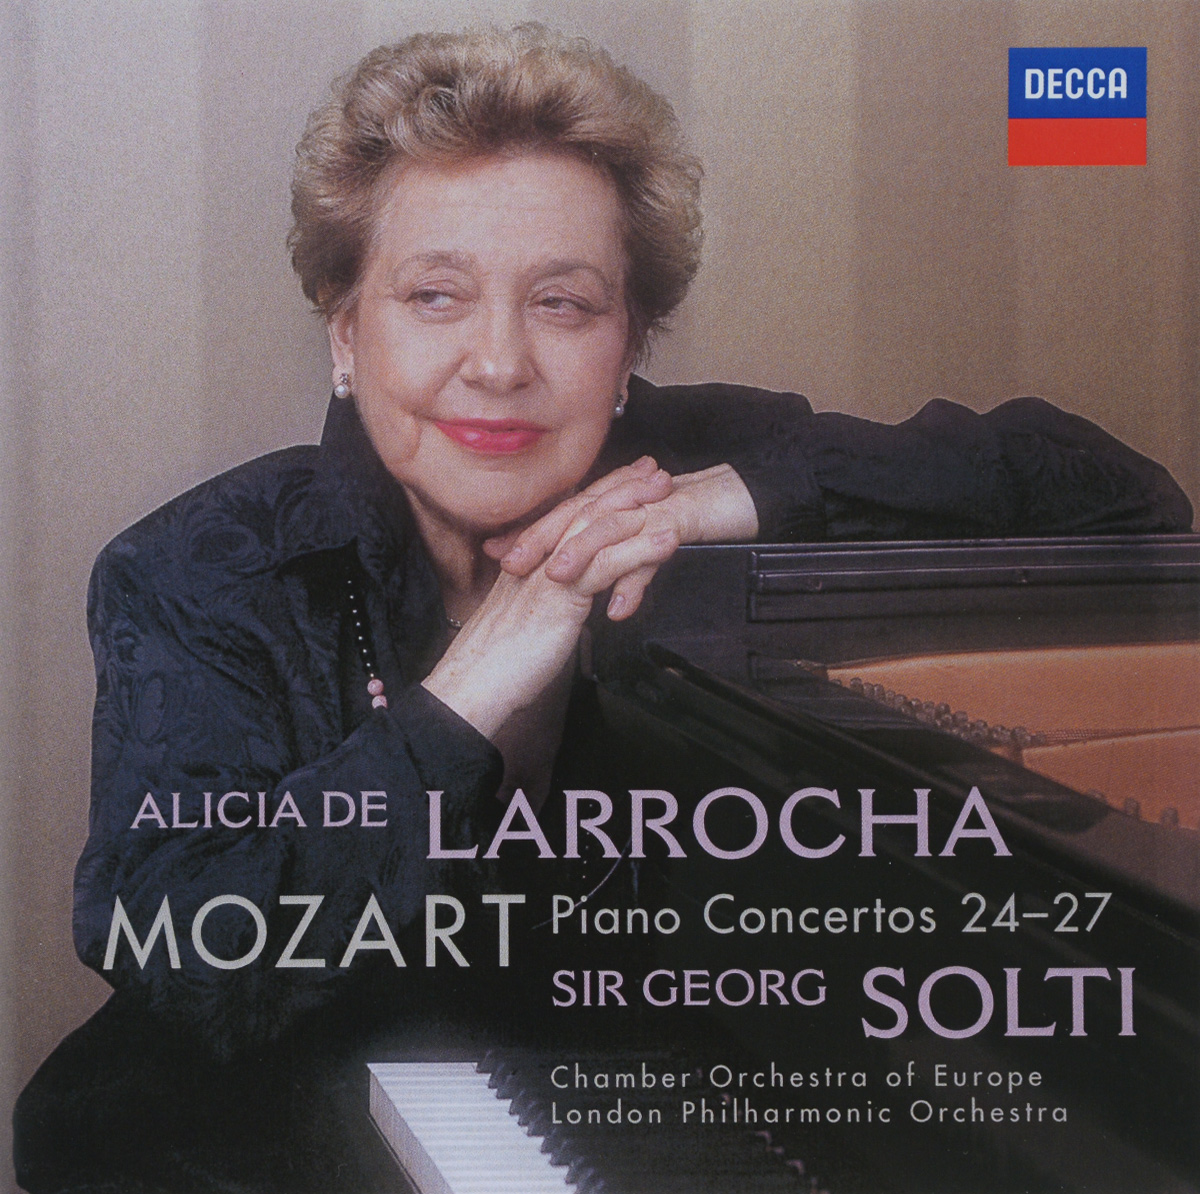 Алисия де Ларроча,Chamber orchestra of the Europe,Джордж Солти,London Philharmonic Orchestra Mozart. Alicia De Larrocha. Piano Concertos 24-27 (2 CD) кристиан захариас orchestra de chambre de lausanne christian zacharias mozart piano concertos vol 5 sacd